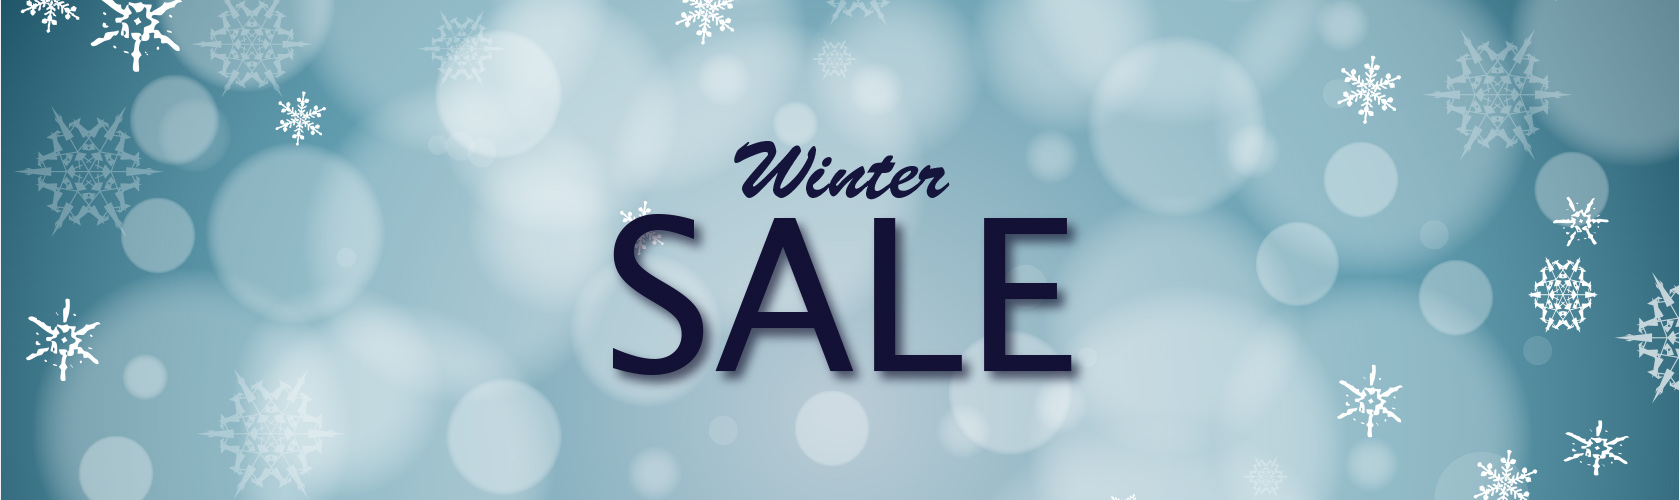 Slideshow Winter SALE 10.01.2020